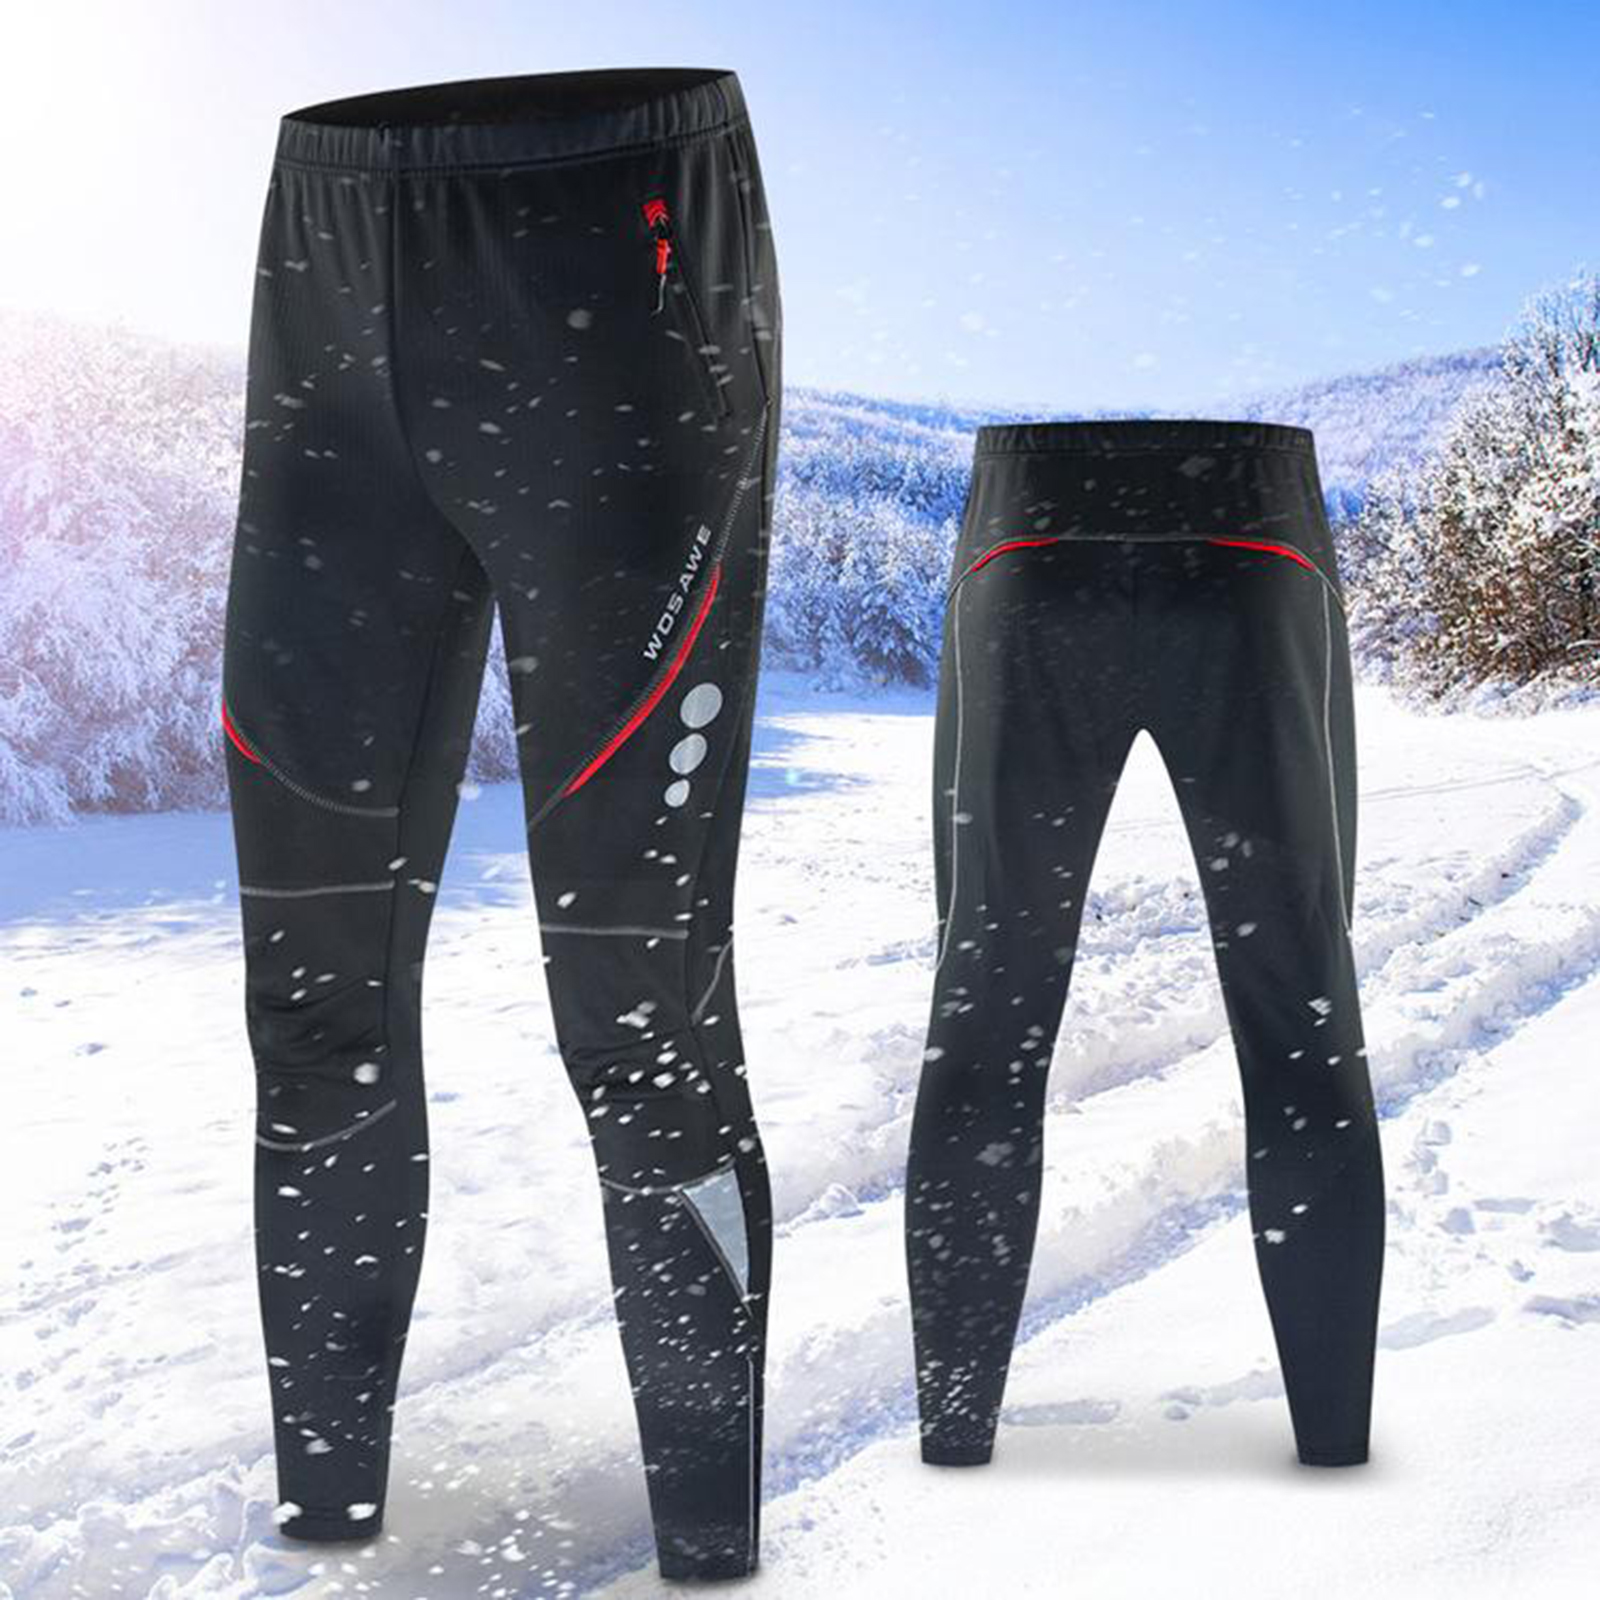 Snowboarding Skiing Pants Long Pants Windproof Cycling Thermal Fleece Winter Pants Running Hiking Cold Weather for Men